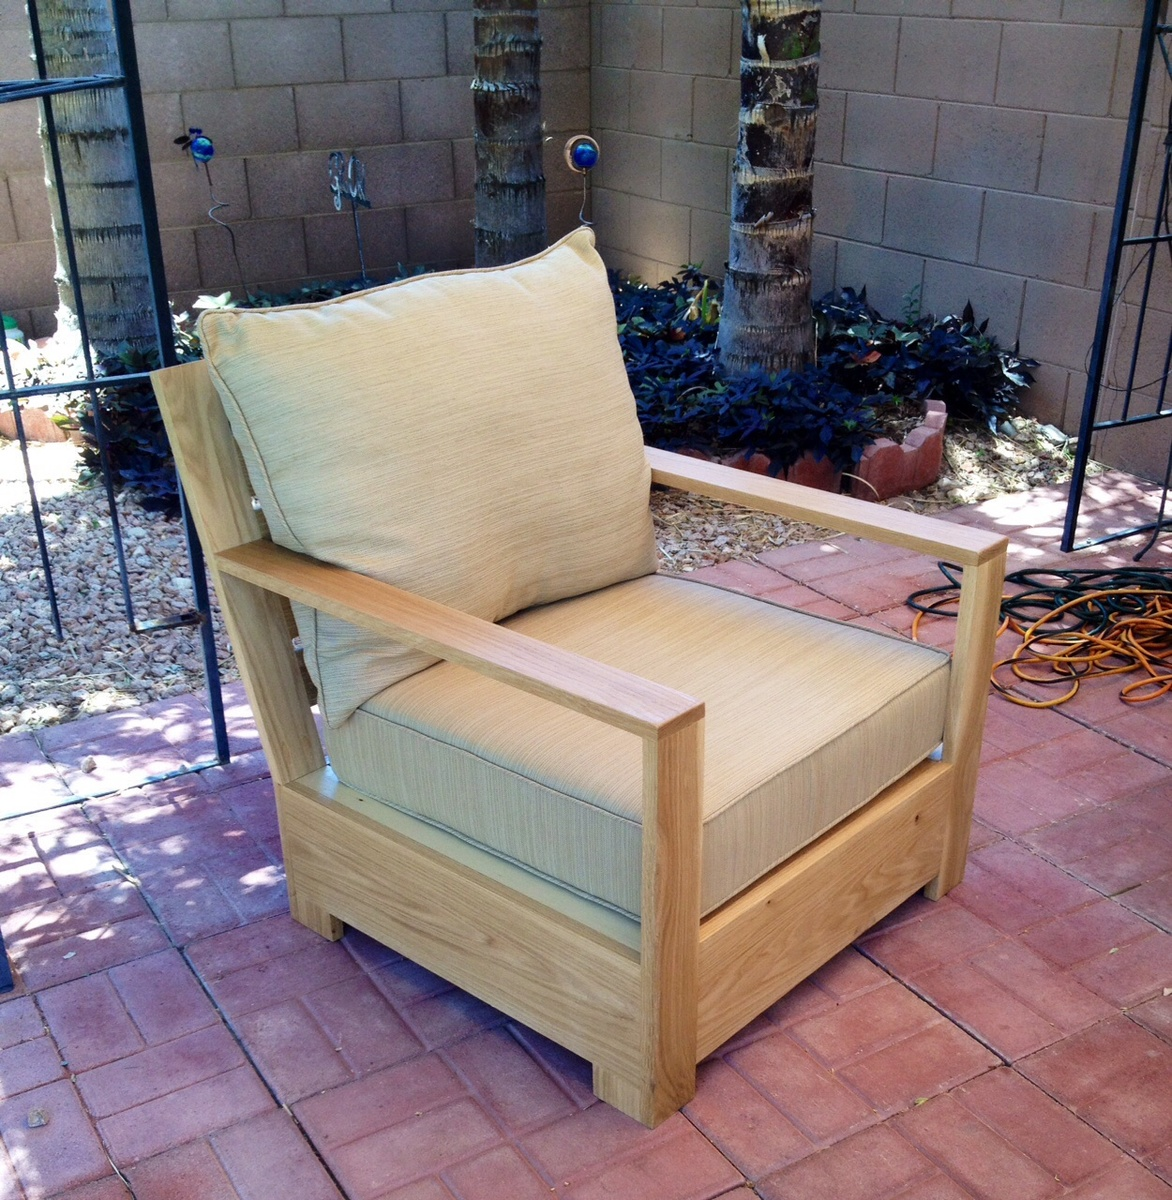 How to build a outdoor lounge chair chair design ideas - Diy balkonmobel ...